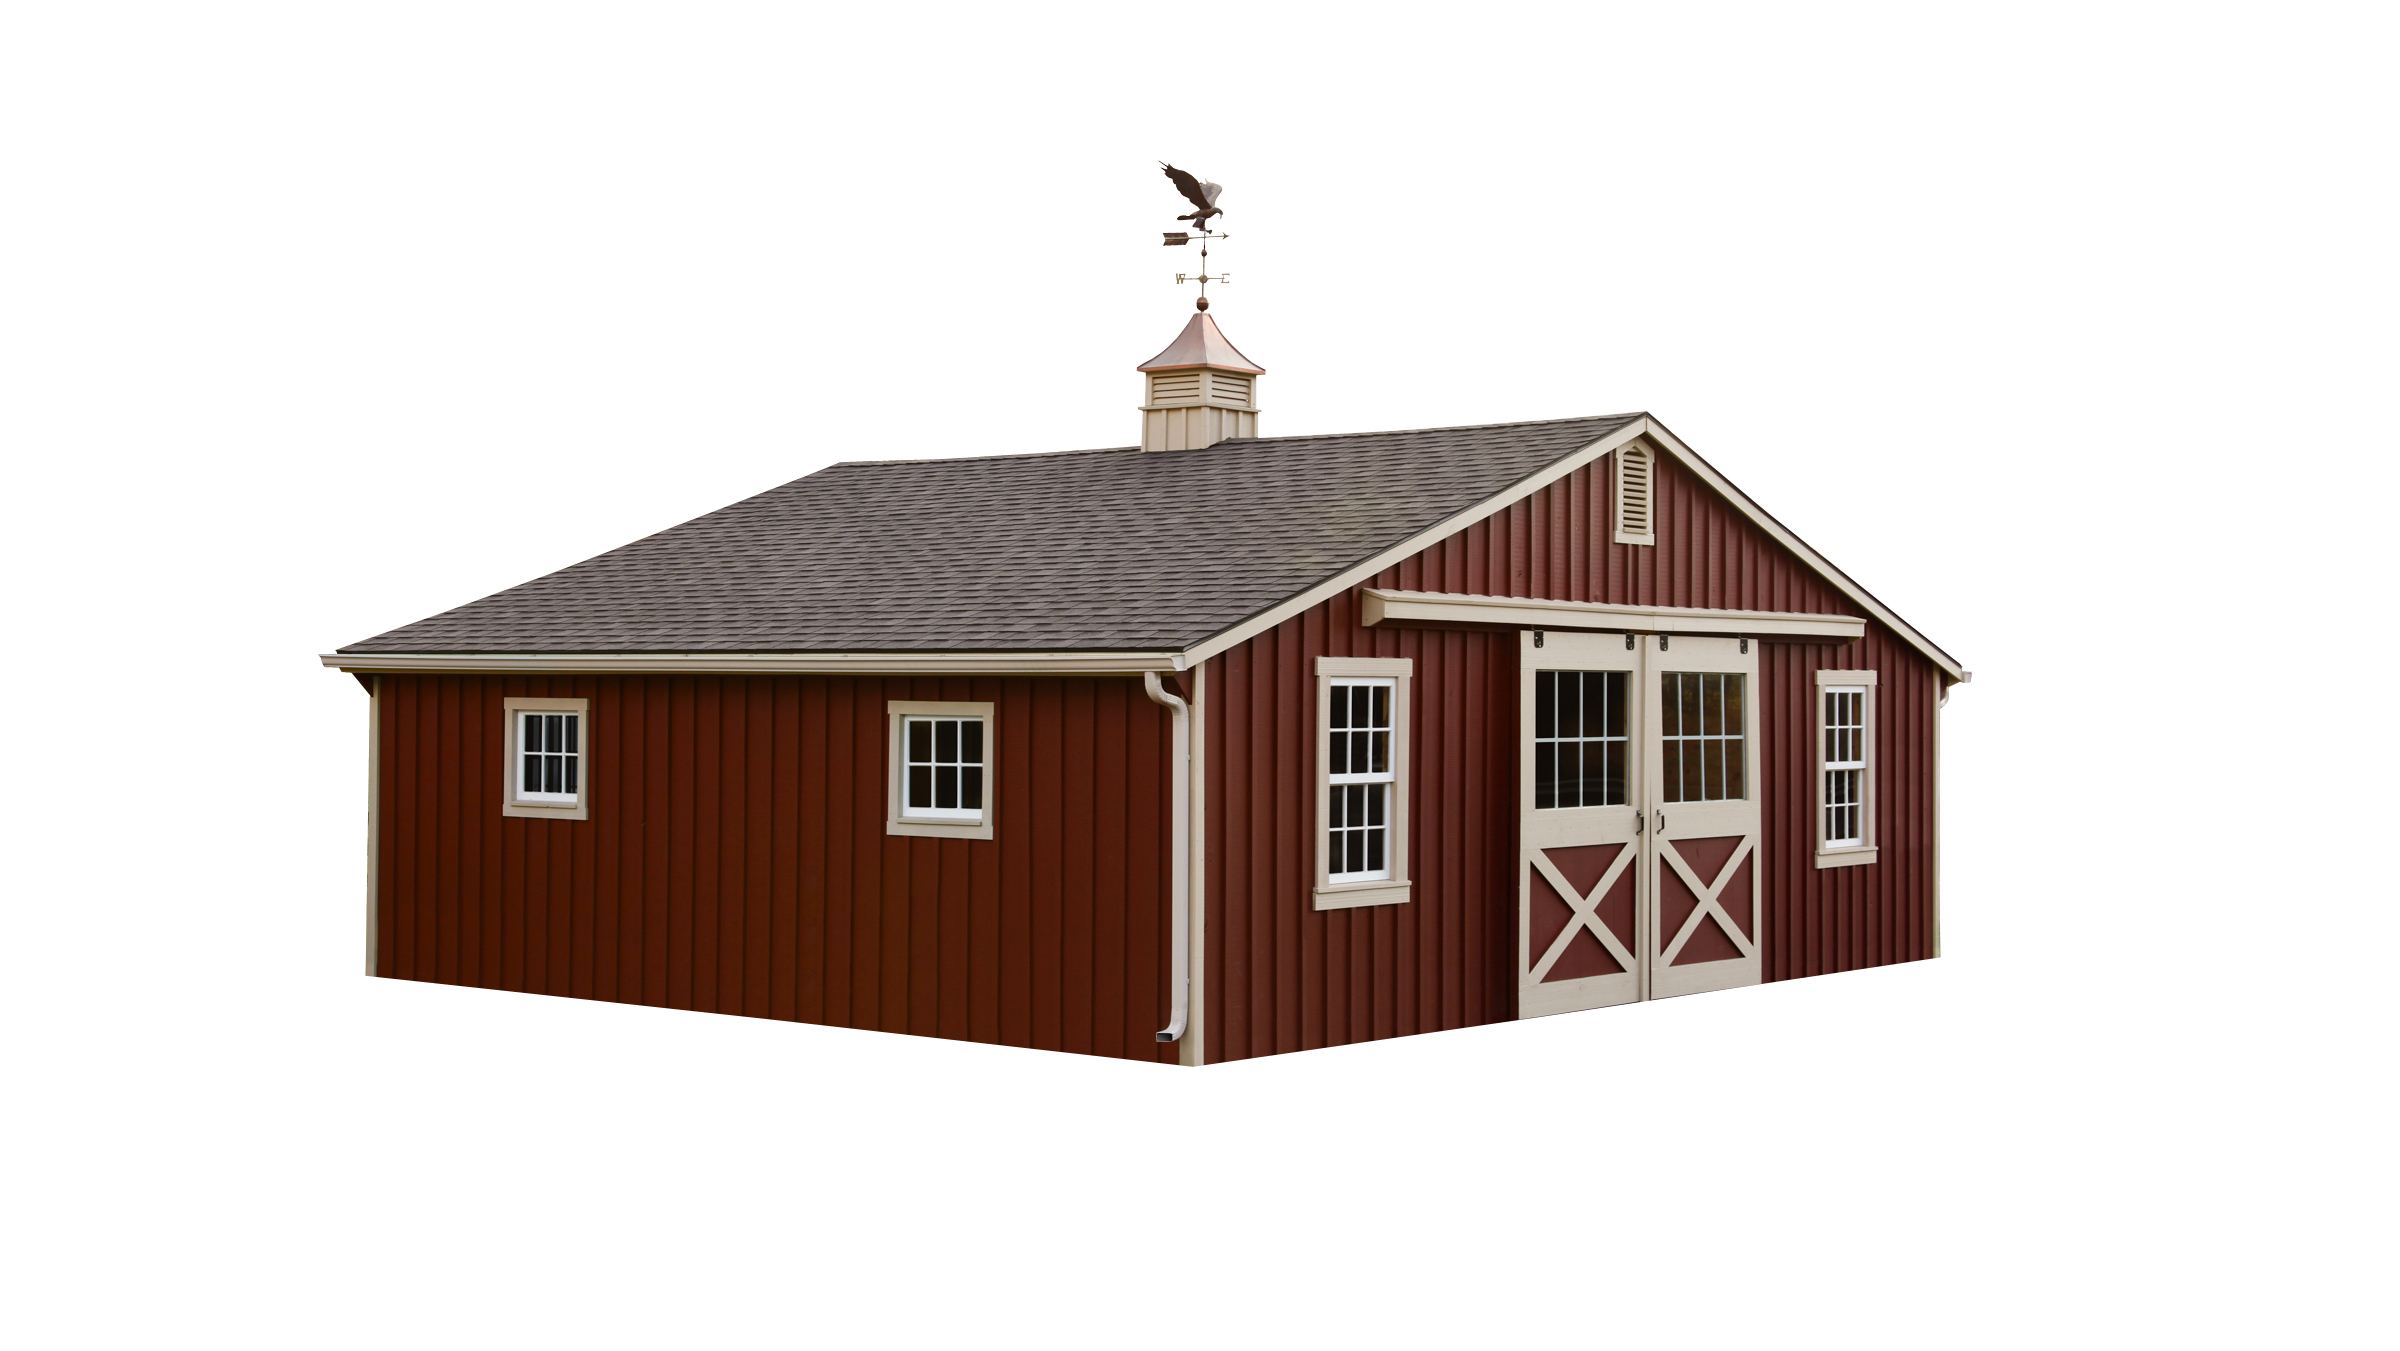 story barn hillside structures amish barns two horse modular